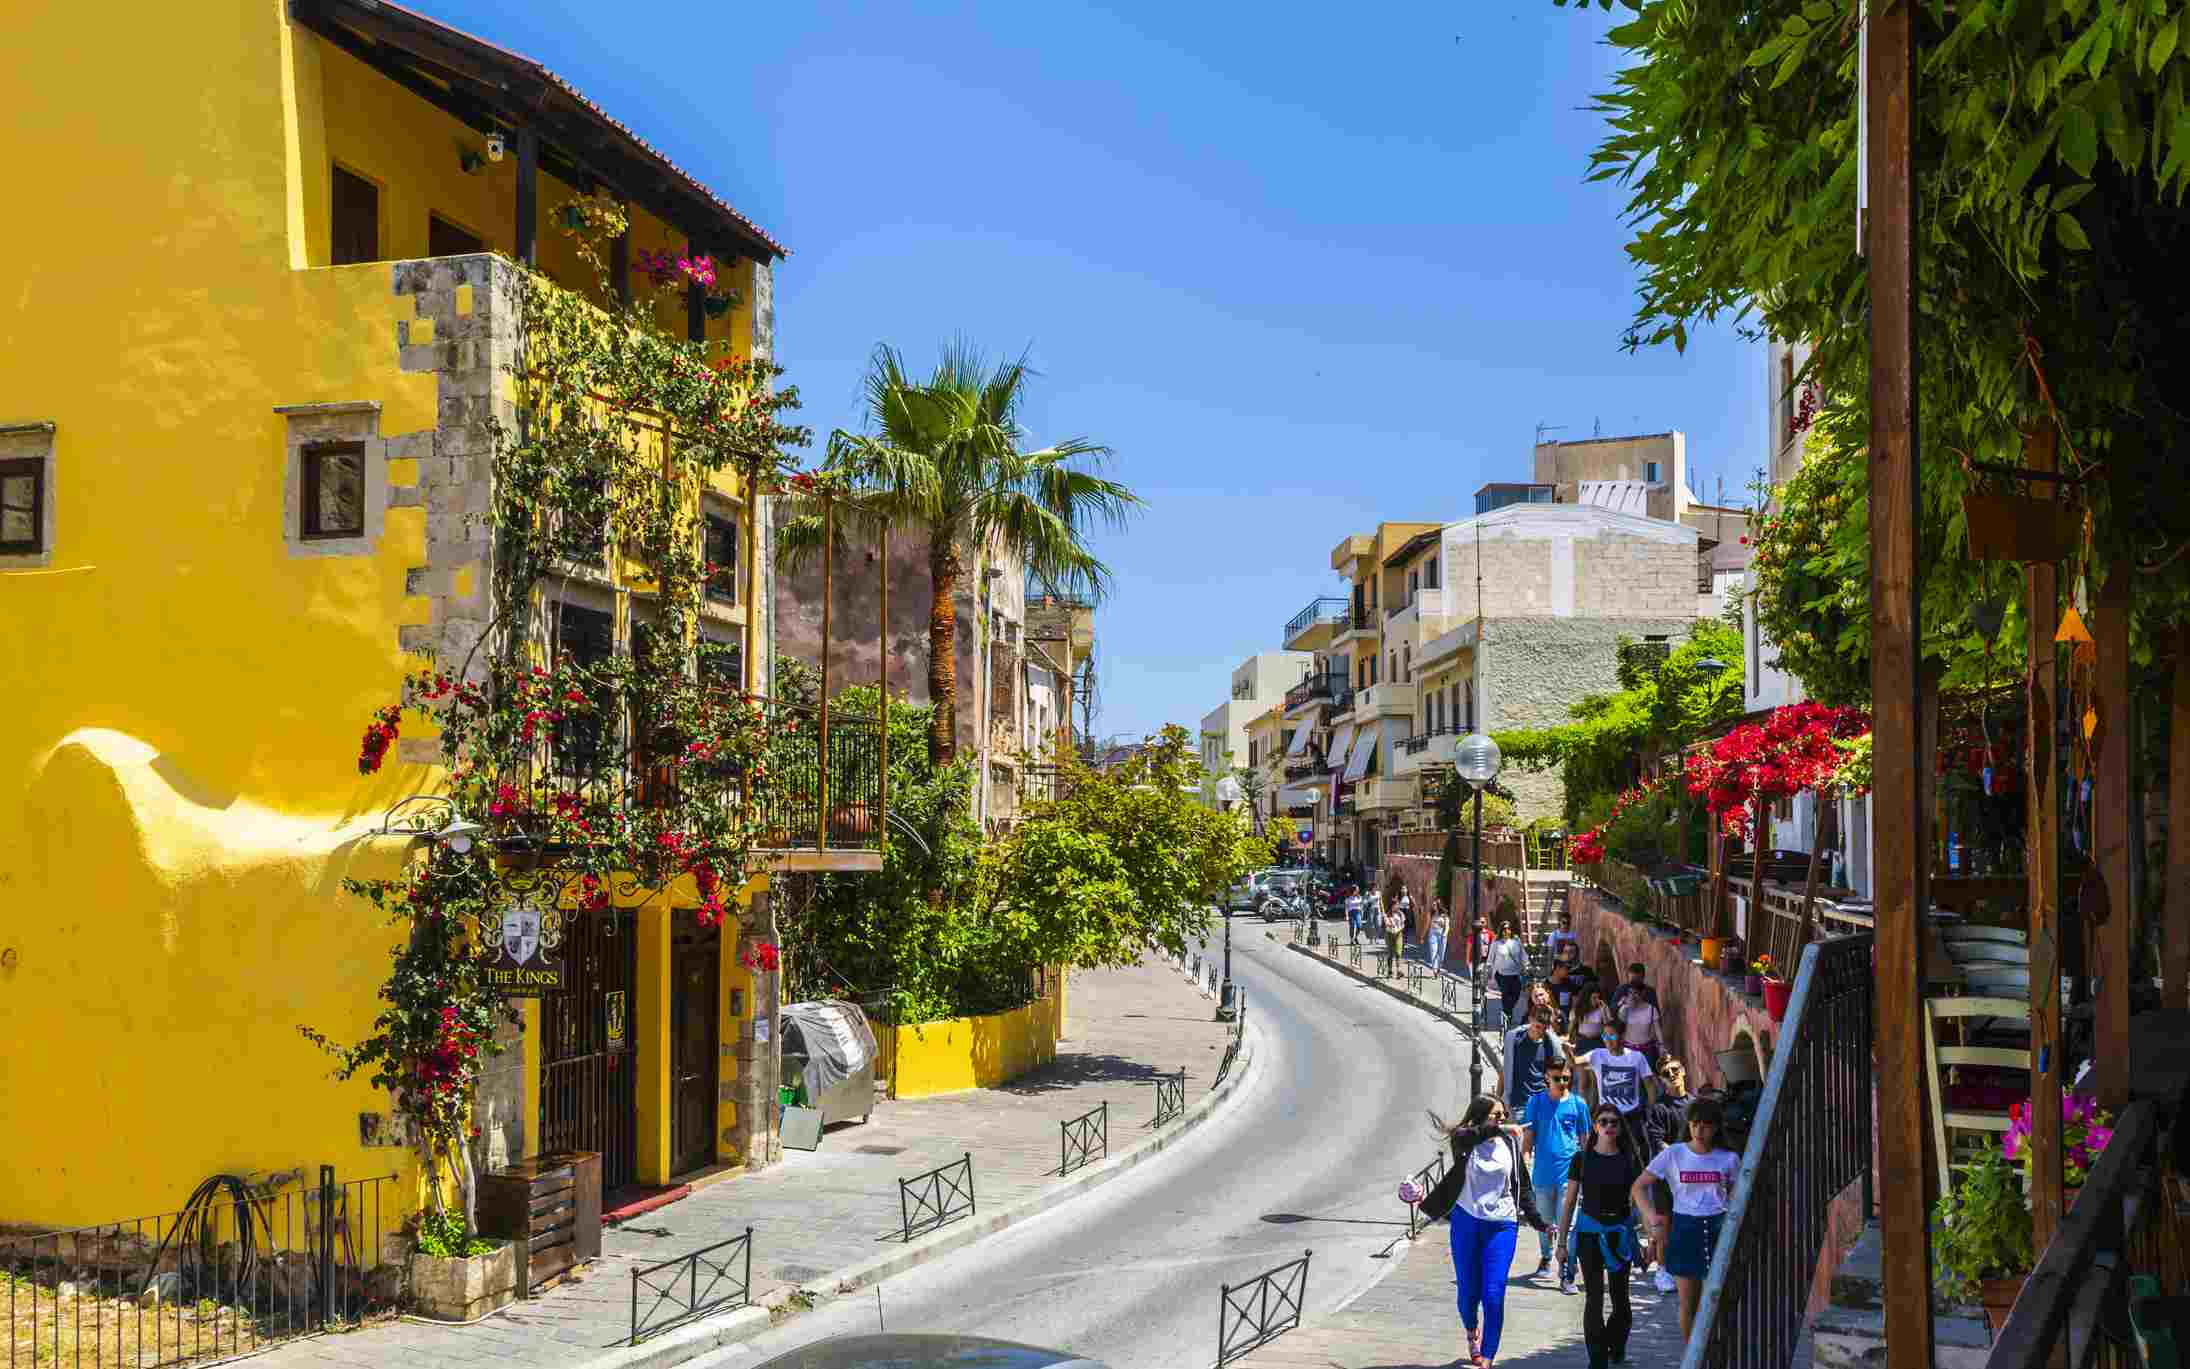 Colorful homes and Venetian architecture are features of Chania on Crete